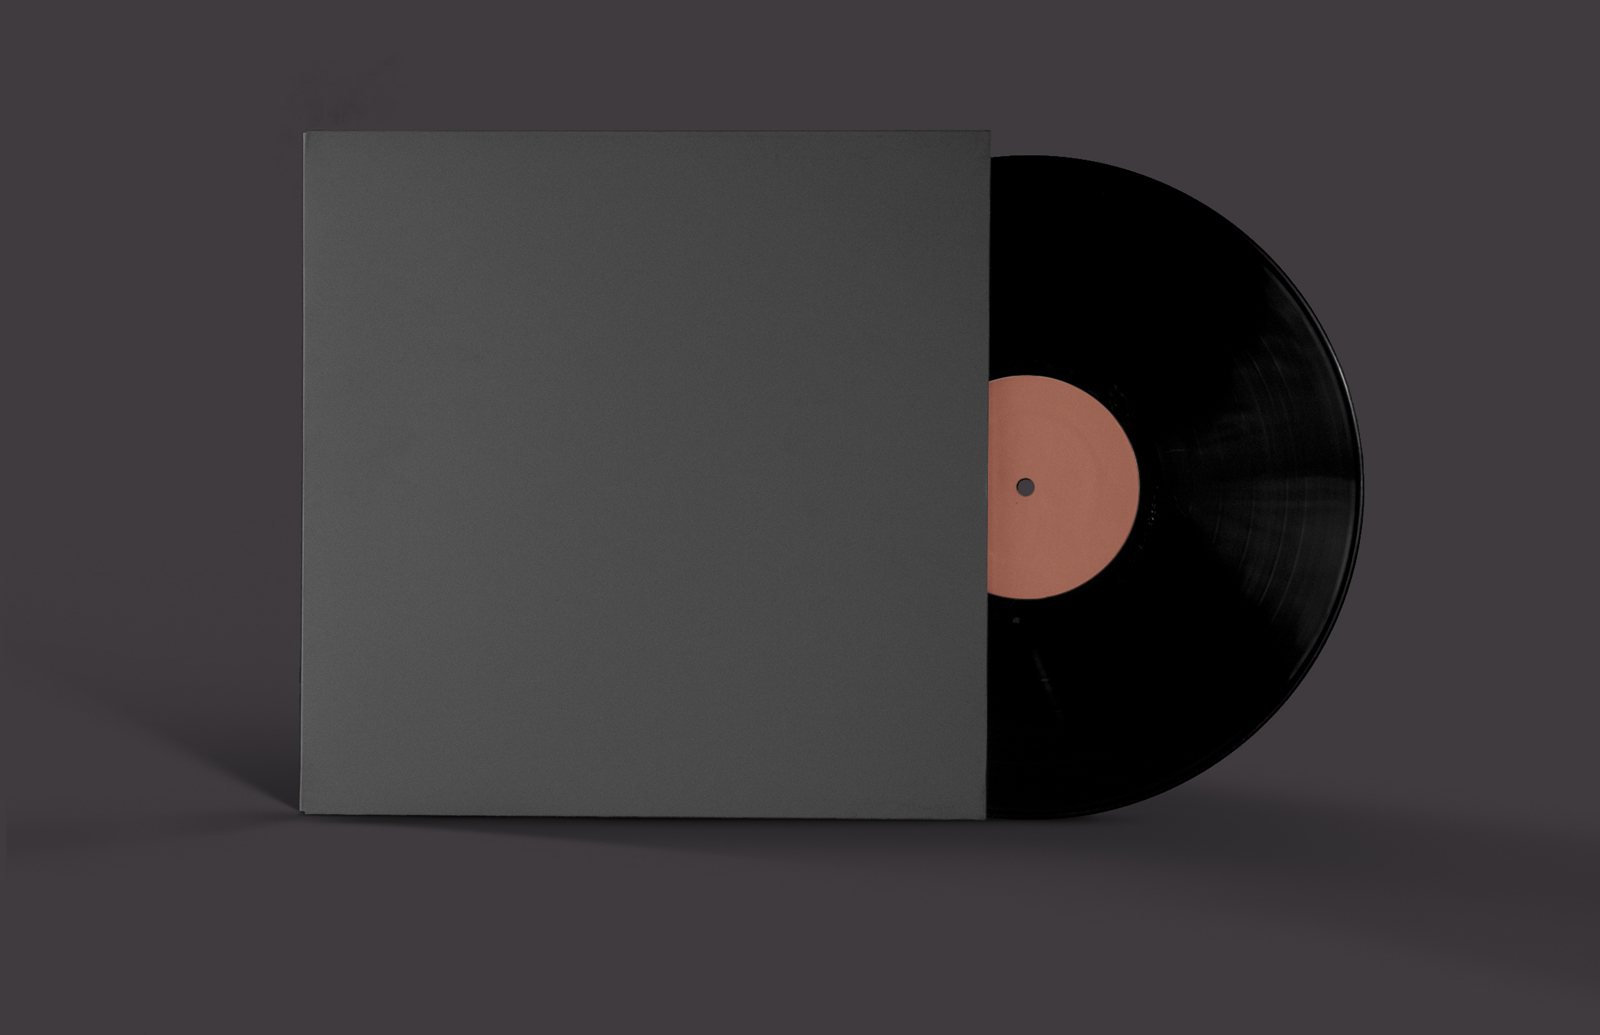 the vinyl record mockup templates get an upgrade go media creativity at work. Black Bedroom Furniture Sets. Home Design Ideas